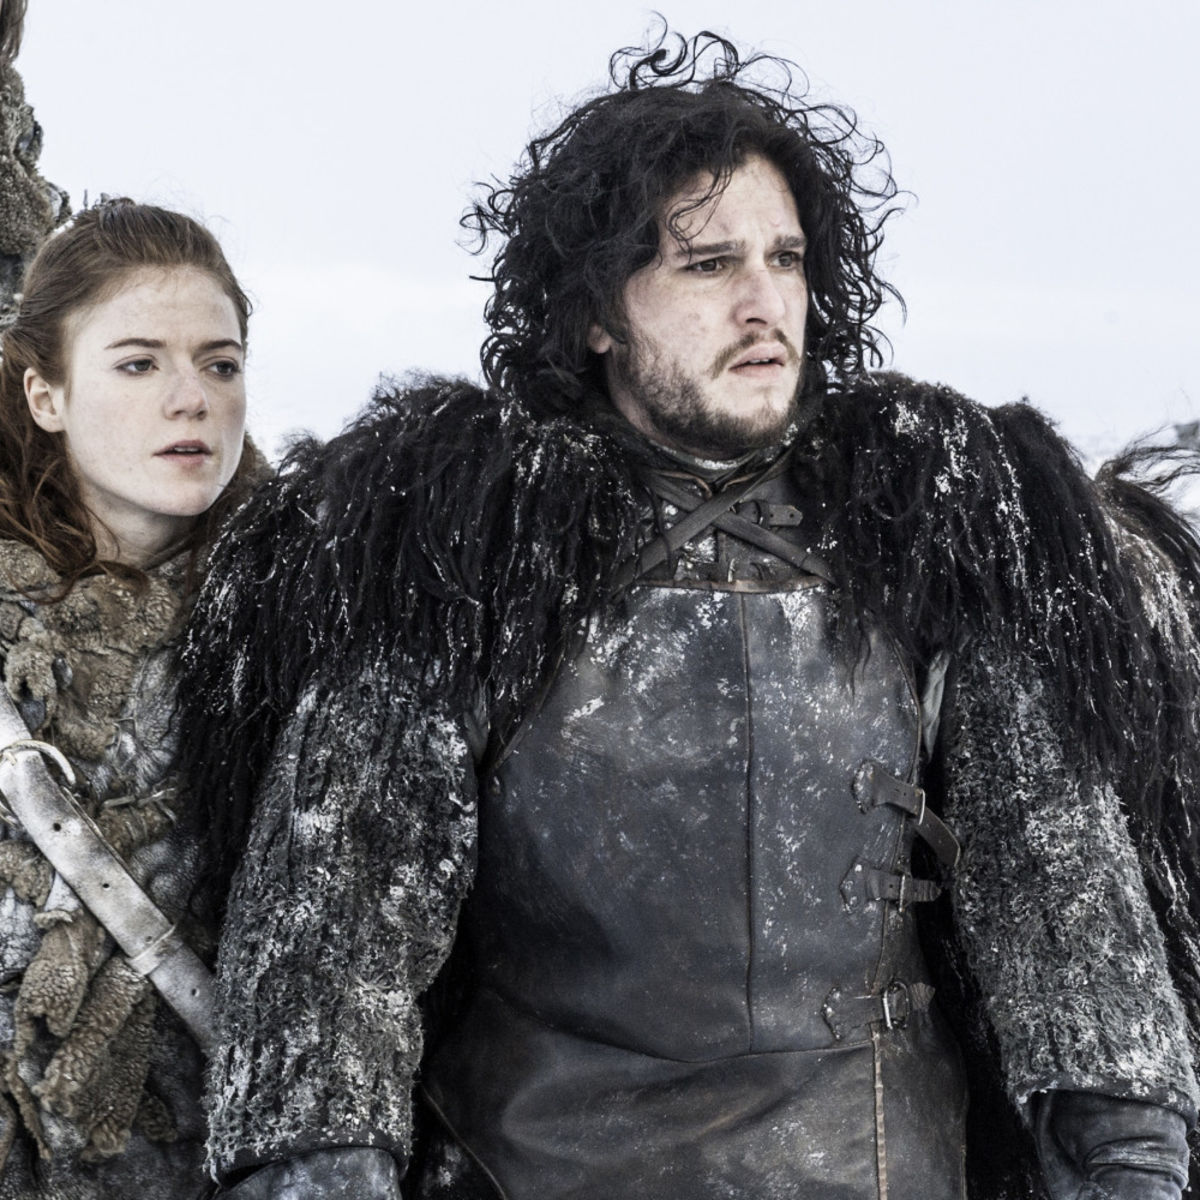 game-of-thrones-cast-hd-images-3.jpg